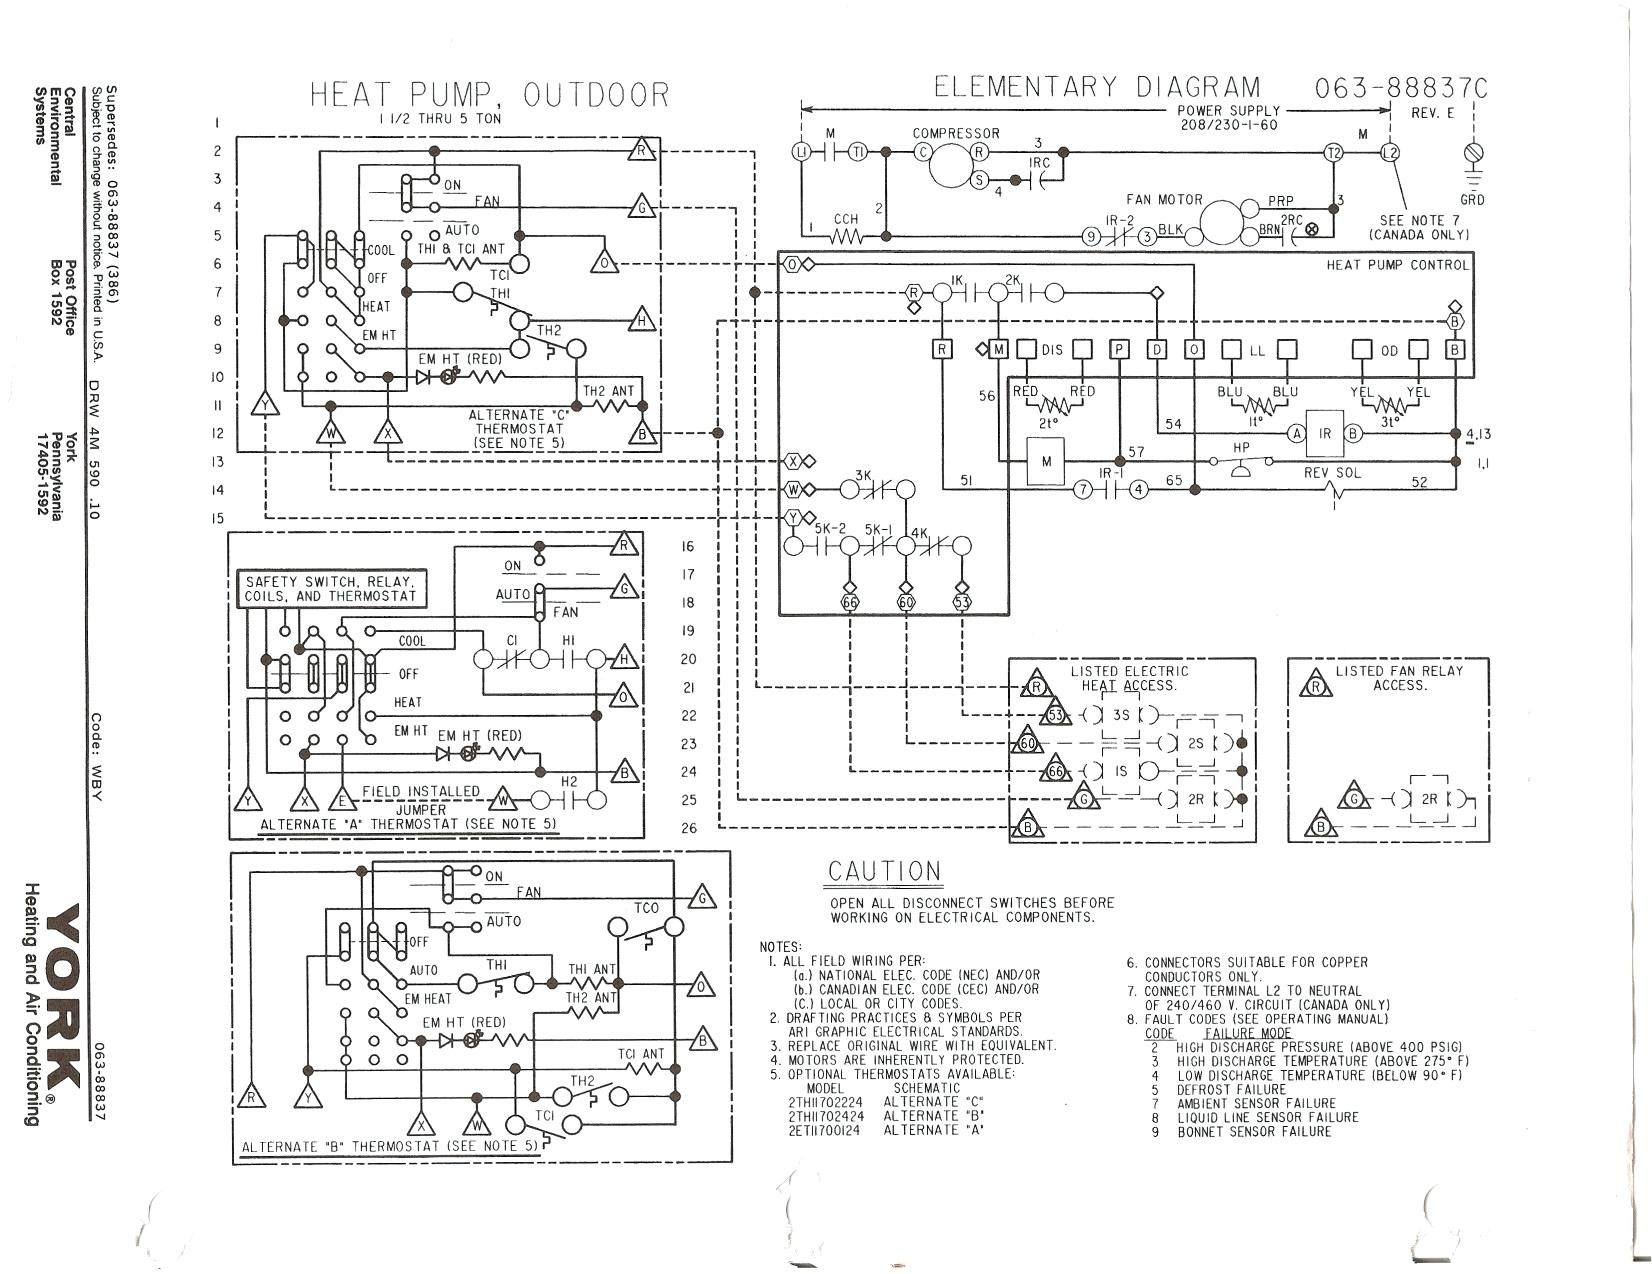 Heating and Cooling thermostat Wiring Diagram Ac thermostat Wiring Diagram Honeywell for Heat Pump Air Conditioner Of Heating and Cooling thermostat Wiring Diagram